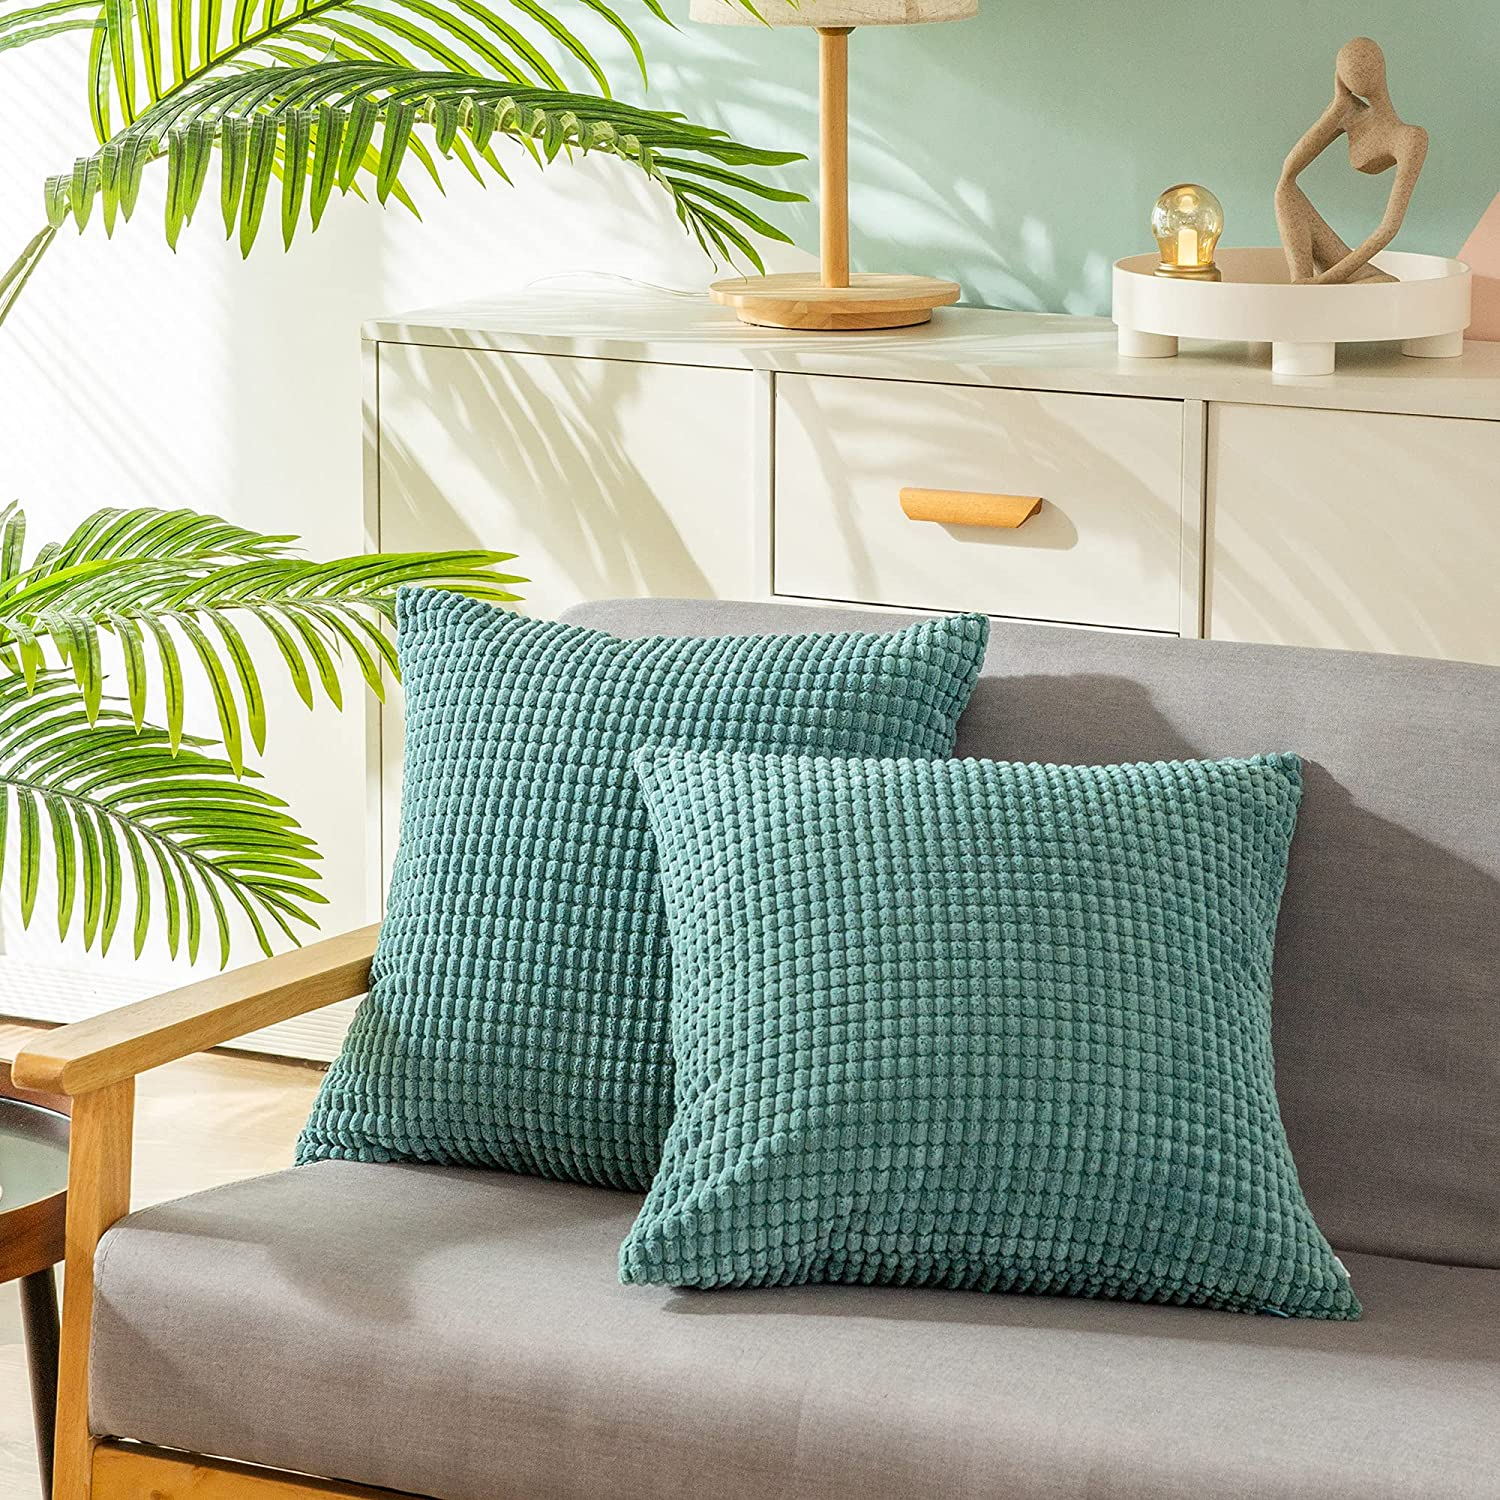 CaliTime Louisville-Jefferson County Mall Pack of 2 Comfy Throw Cases Covers Pillow for Save money Sof Couch